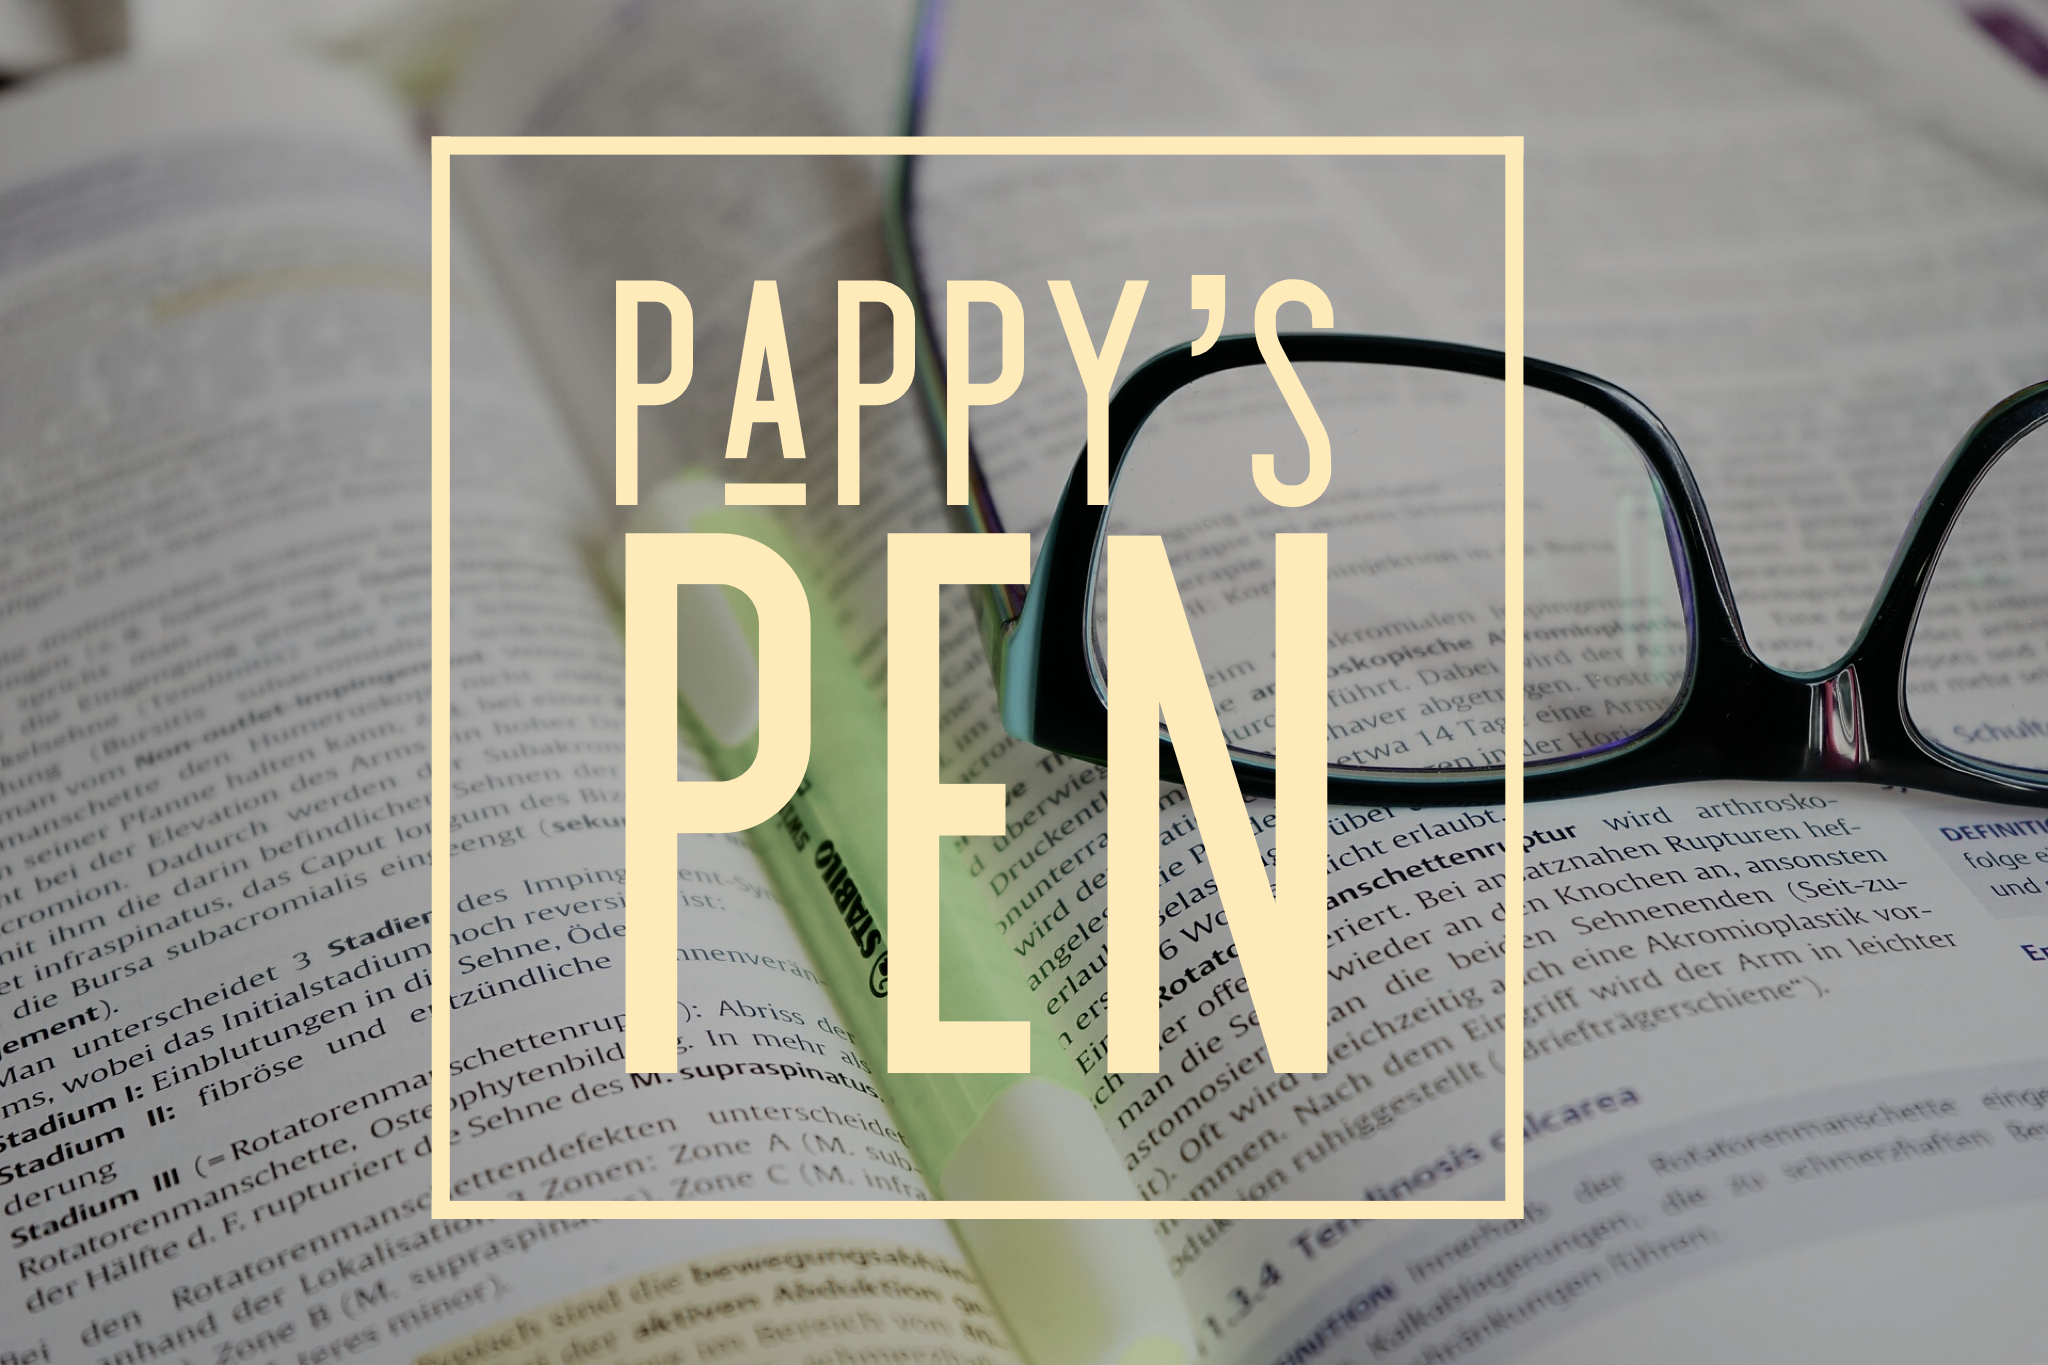 *Note - This article was not written by New John Simmons, but by a contributing writer named Pappy. This post is part of a continuing series called Pappy's Pen where he writes about his family, faith and recent cancer diagnosis. *